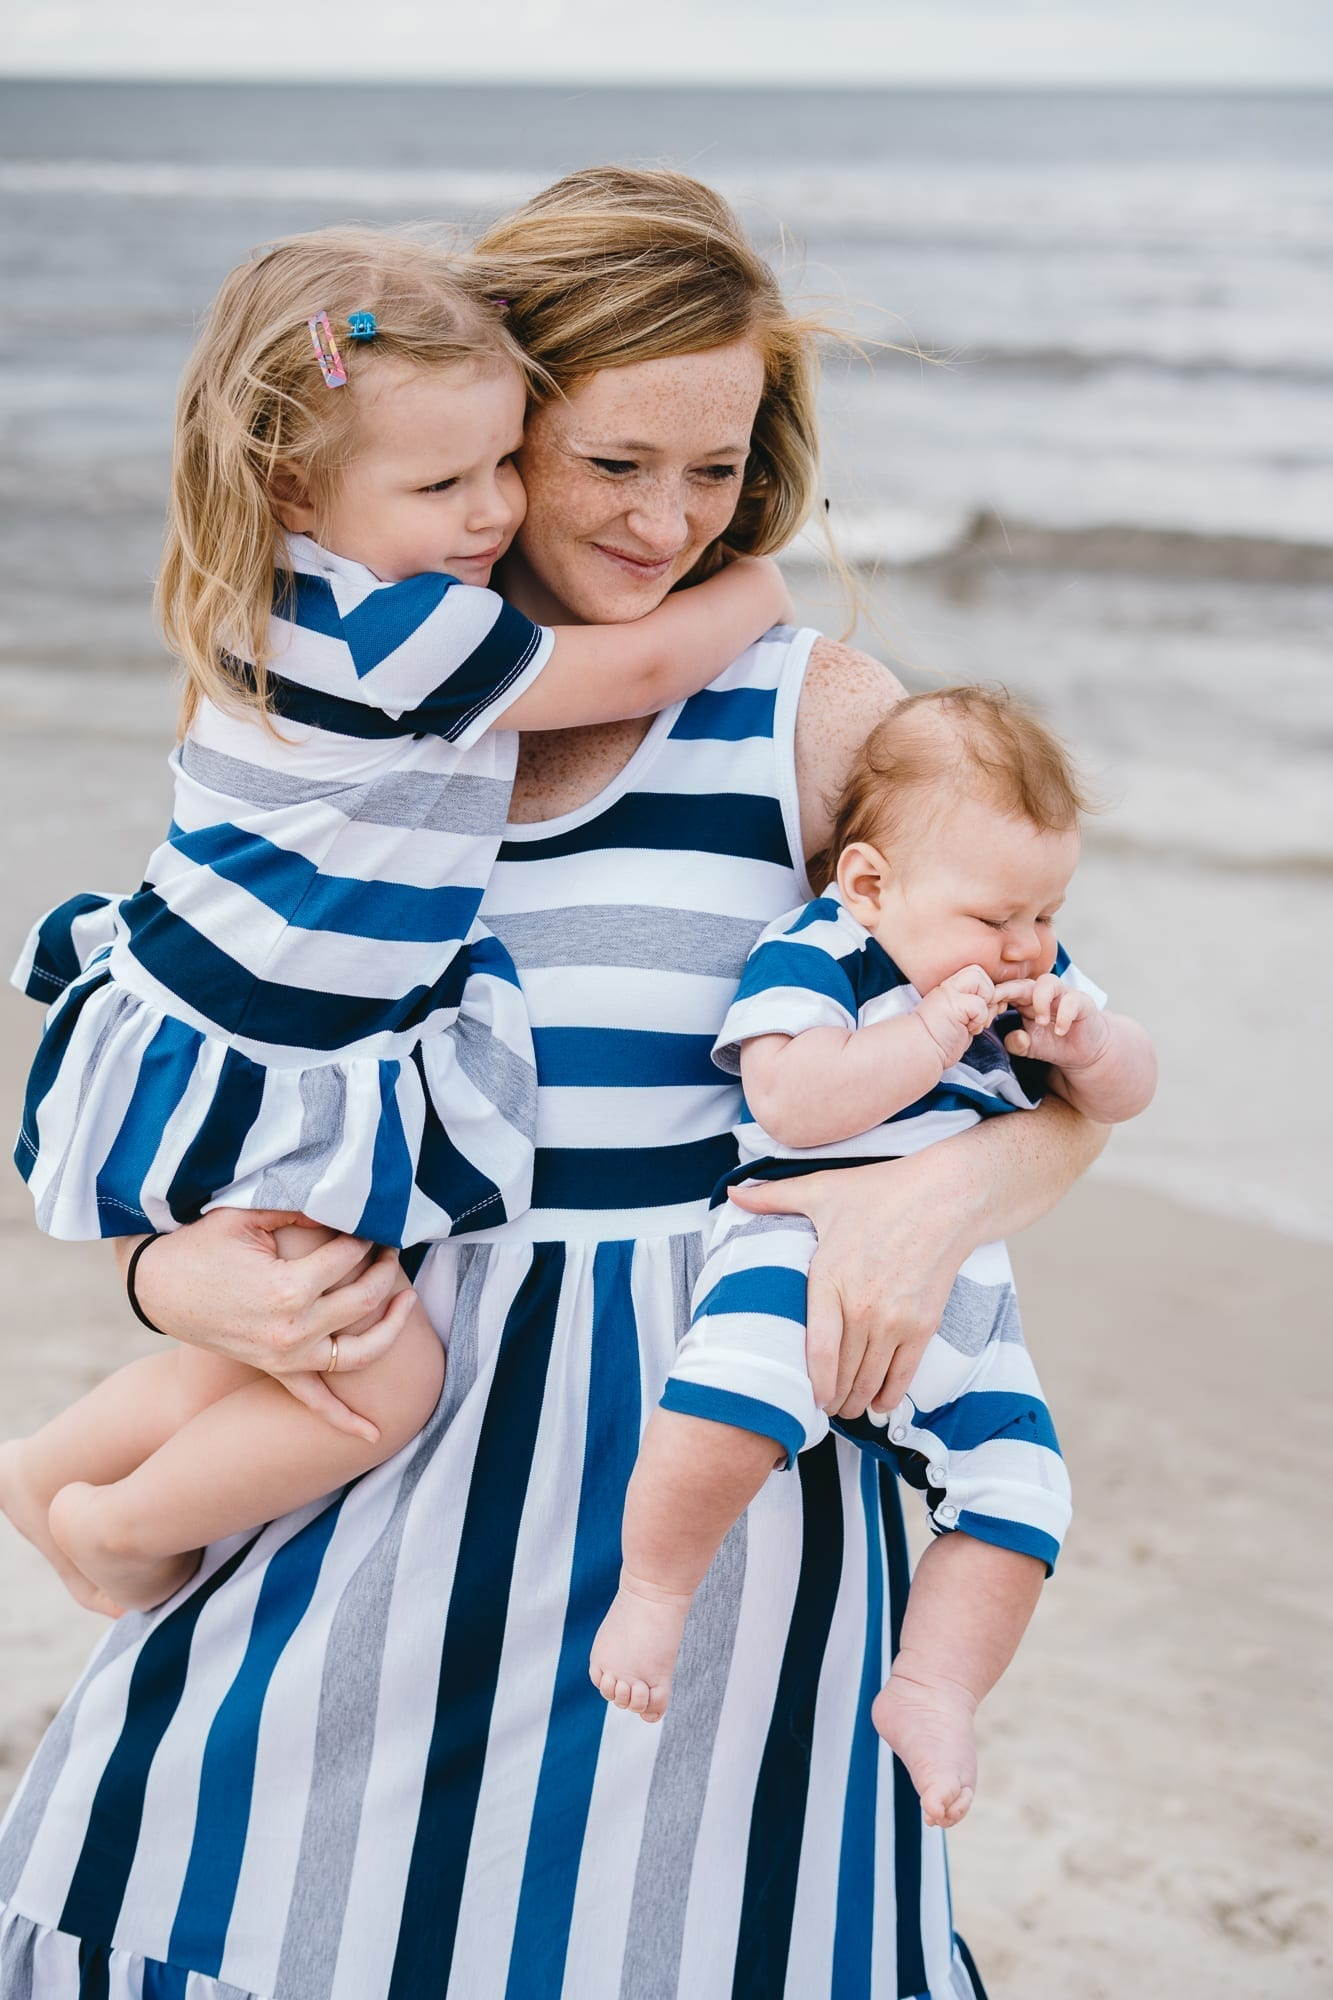 Blue striped summer outfits for girl, boy, unisex, kid, toddler, mom